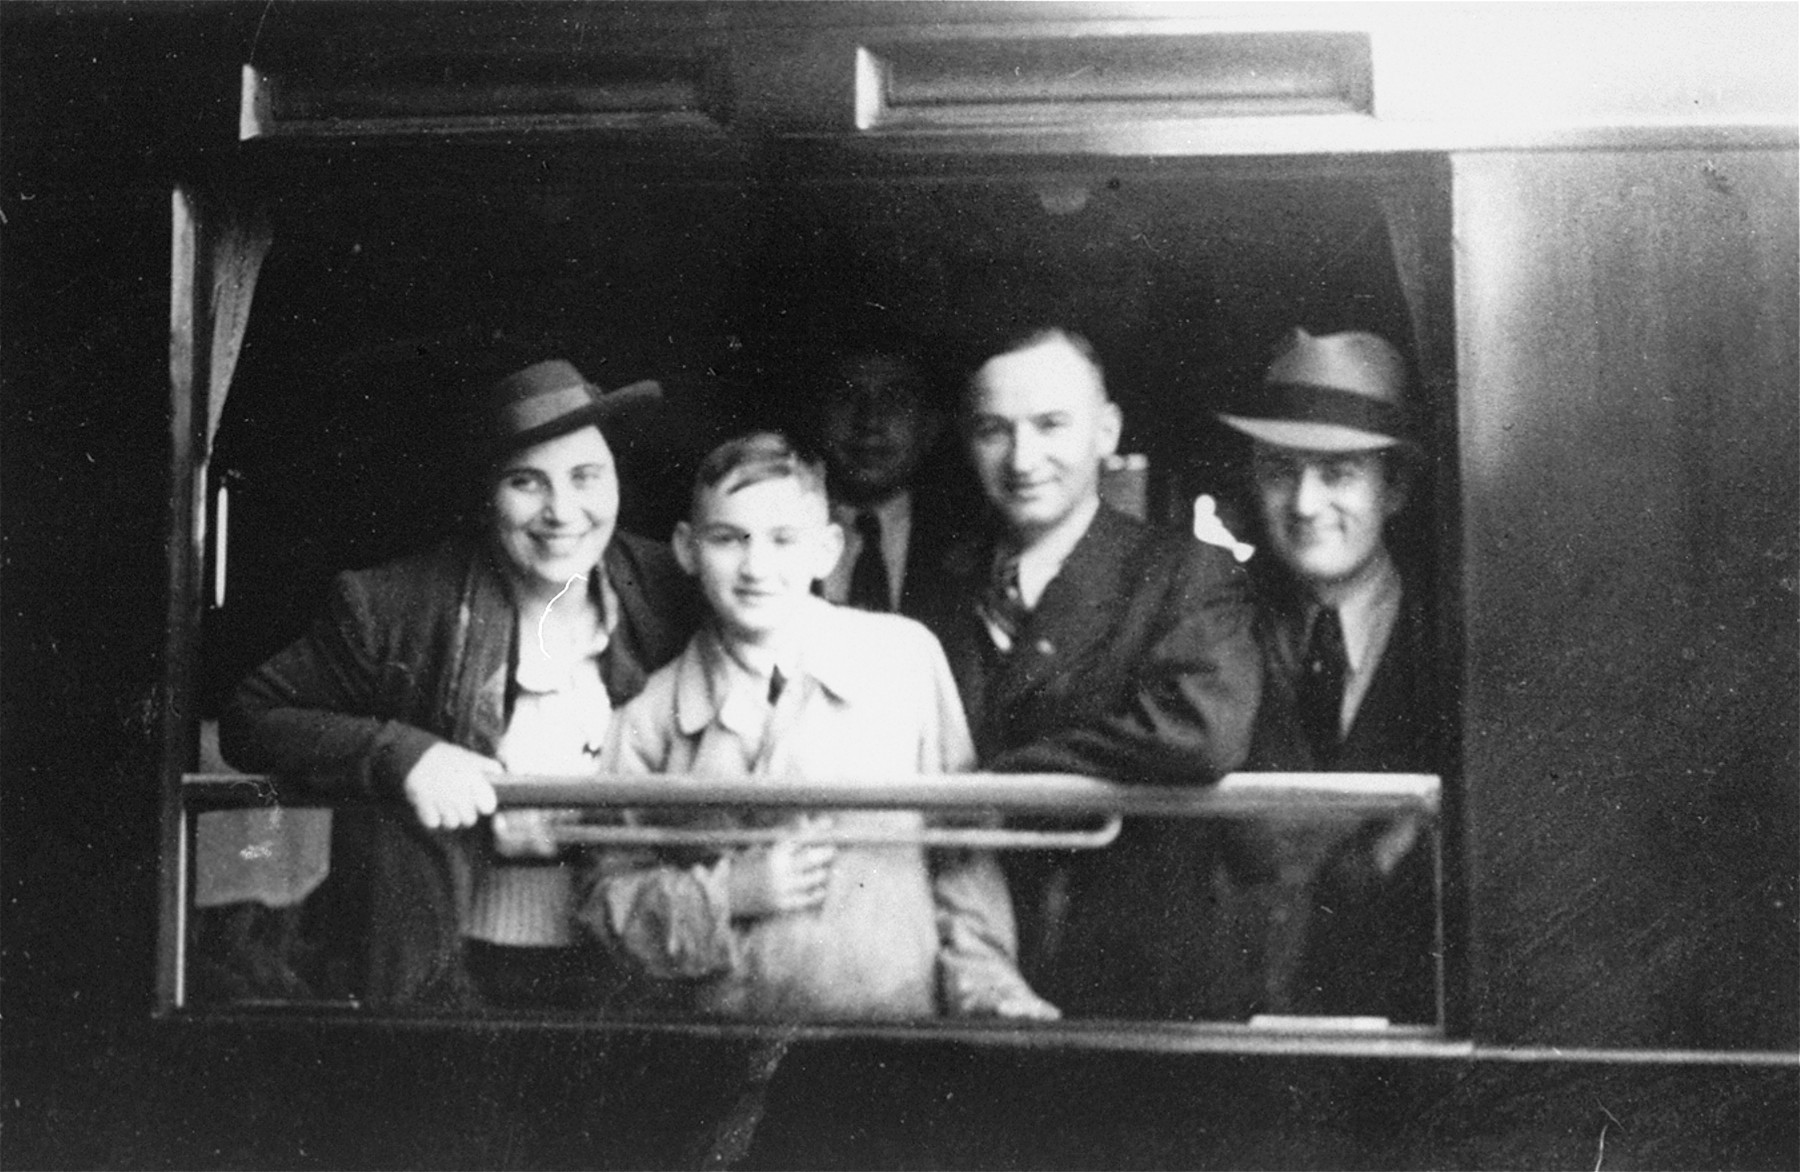 A Jewish family poses at the window of their railcar before the train leaves the station.  The family is leaving Germany for the United States.  Pictured are Sol and Henrietta Meyer with their son Harvey.  The Meyers are the aunt and uncle of the donor, Jill Berg Pauly,